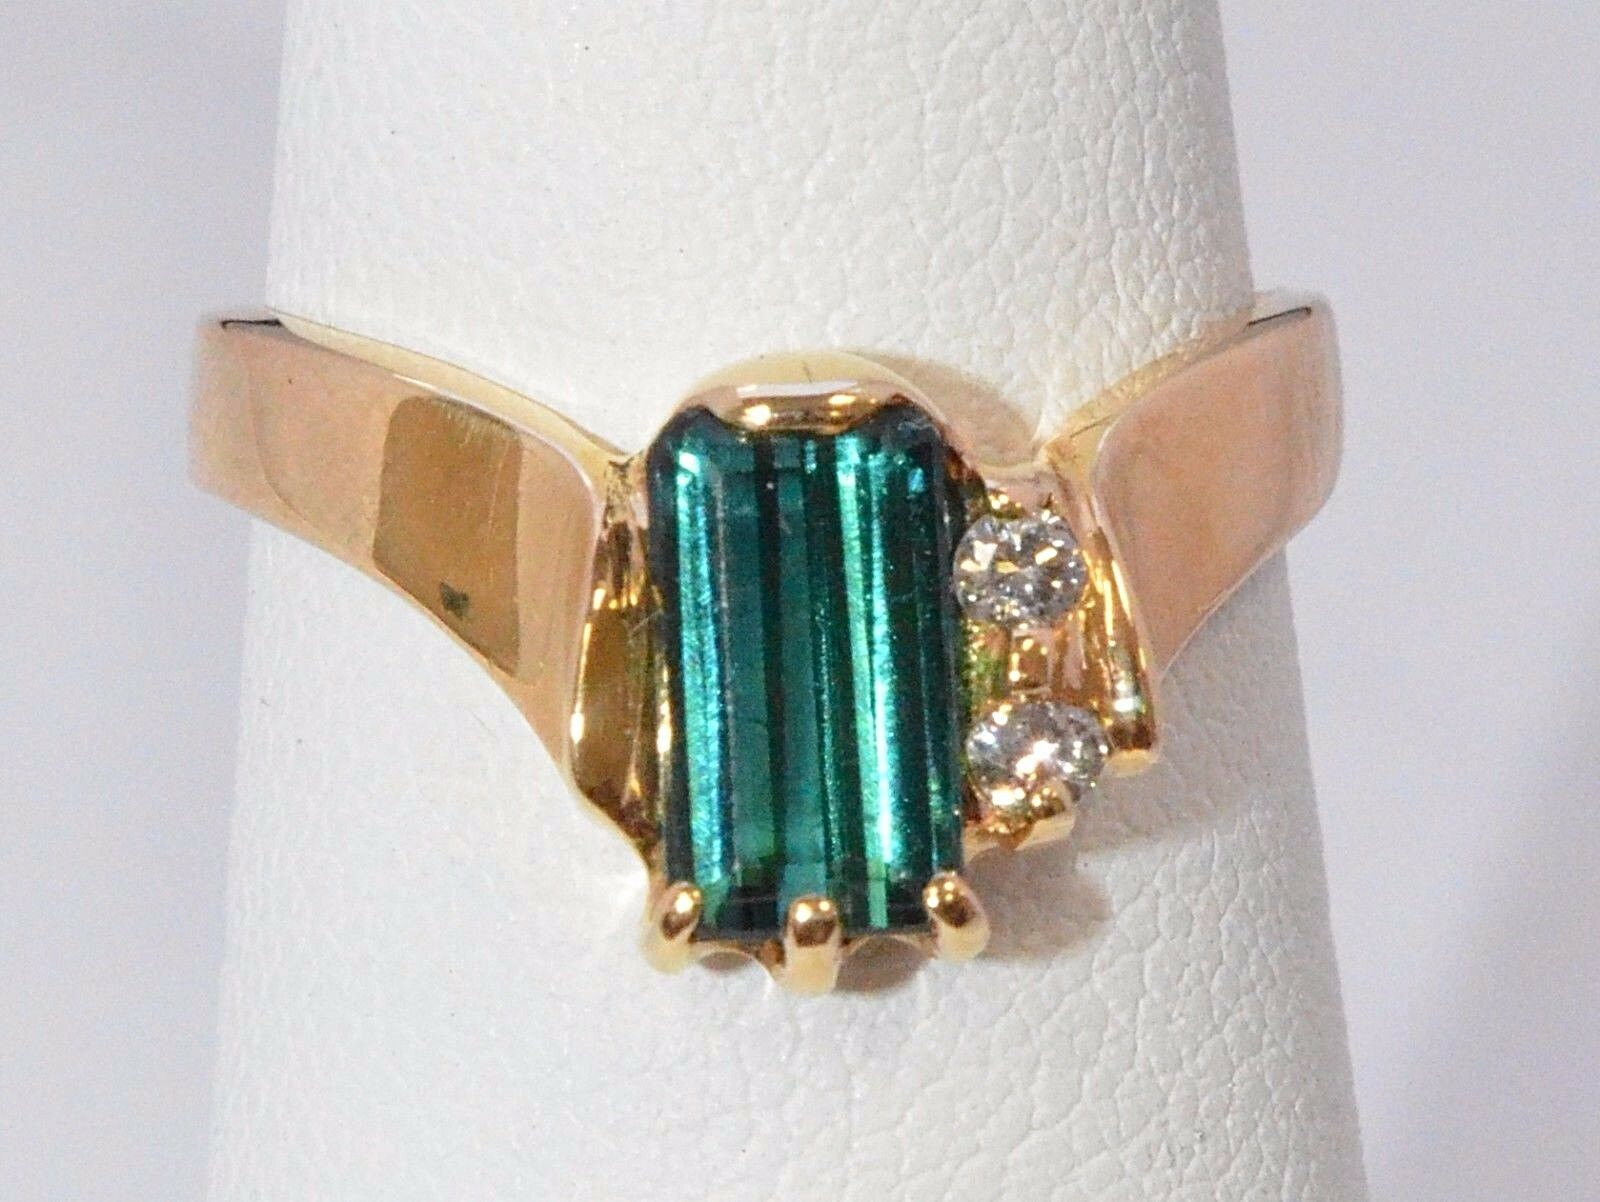 2572-14K YELLOW gold TSAVORITE STONE and 2 WHITE STONES  RING 4.30 GRAMS SZ 6